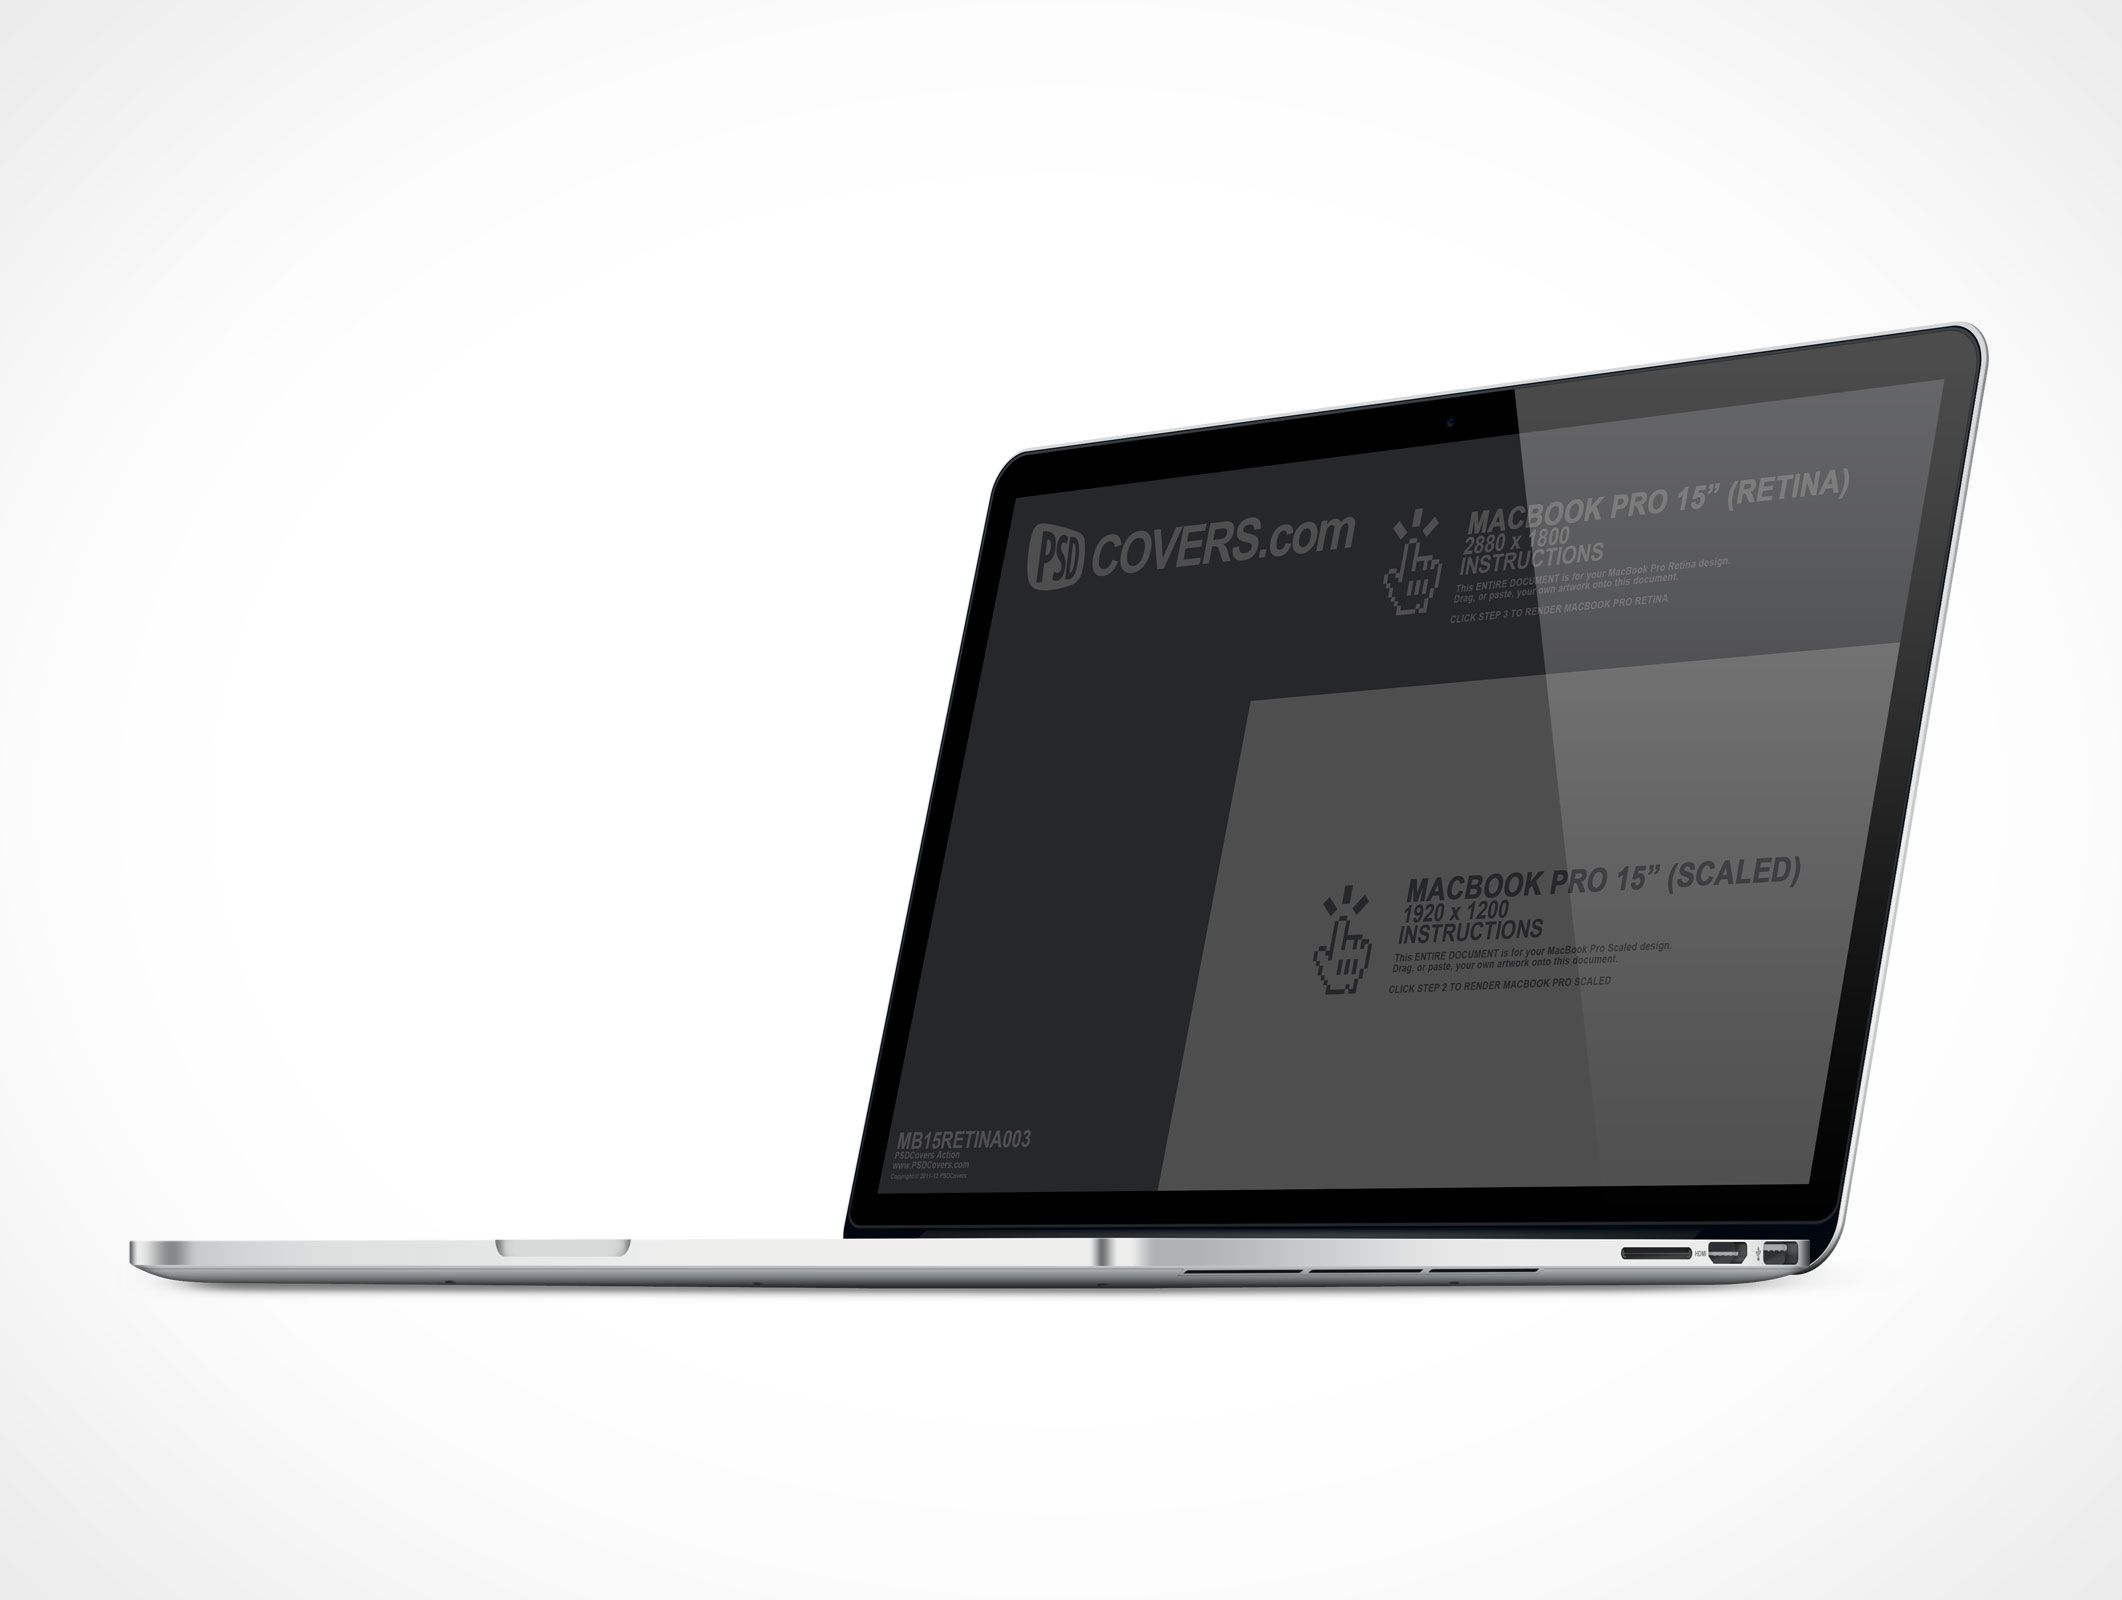 MB15RETINA003 is the MacBook Pro with Retina display resolution of 2880 x 1800 @ 300DPI. Similar to MB15RETINA002, this Cover Action displays the MacBook Pro Retina from the right side. Supports rendering your 1920 x 1200 designs as well. Great for your application mockups. #displayresolution